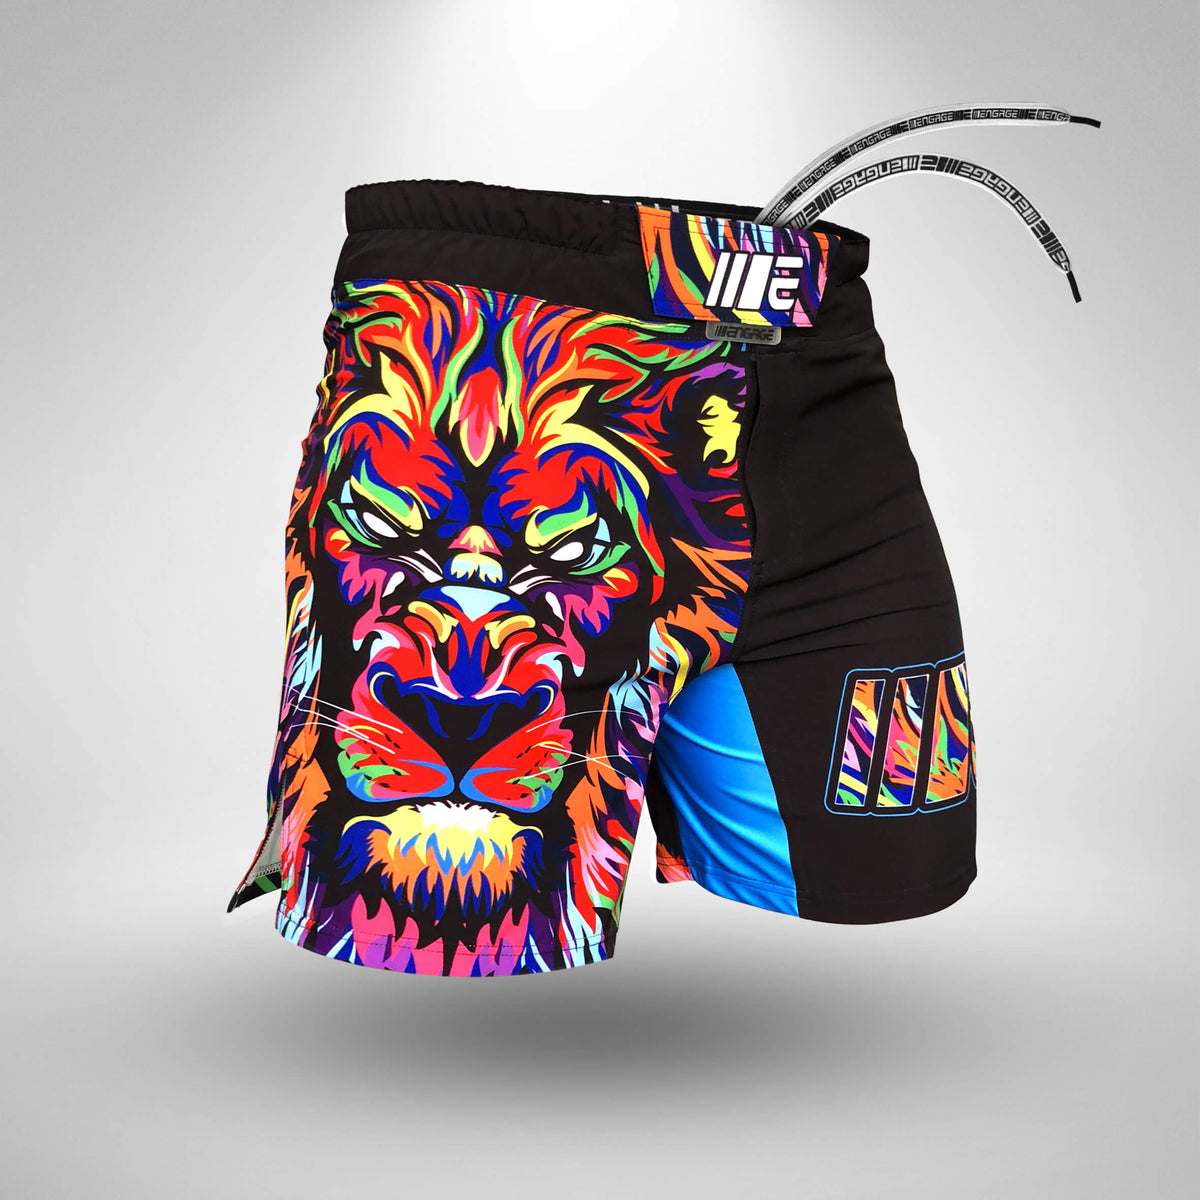 Engage MMA/K1 Fight Short - Higher Lion V2.0